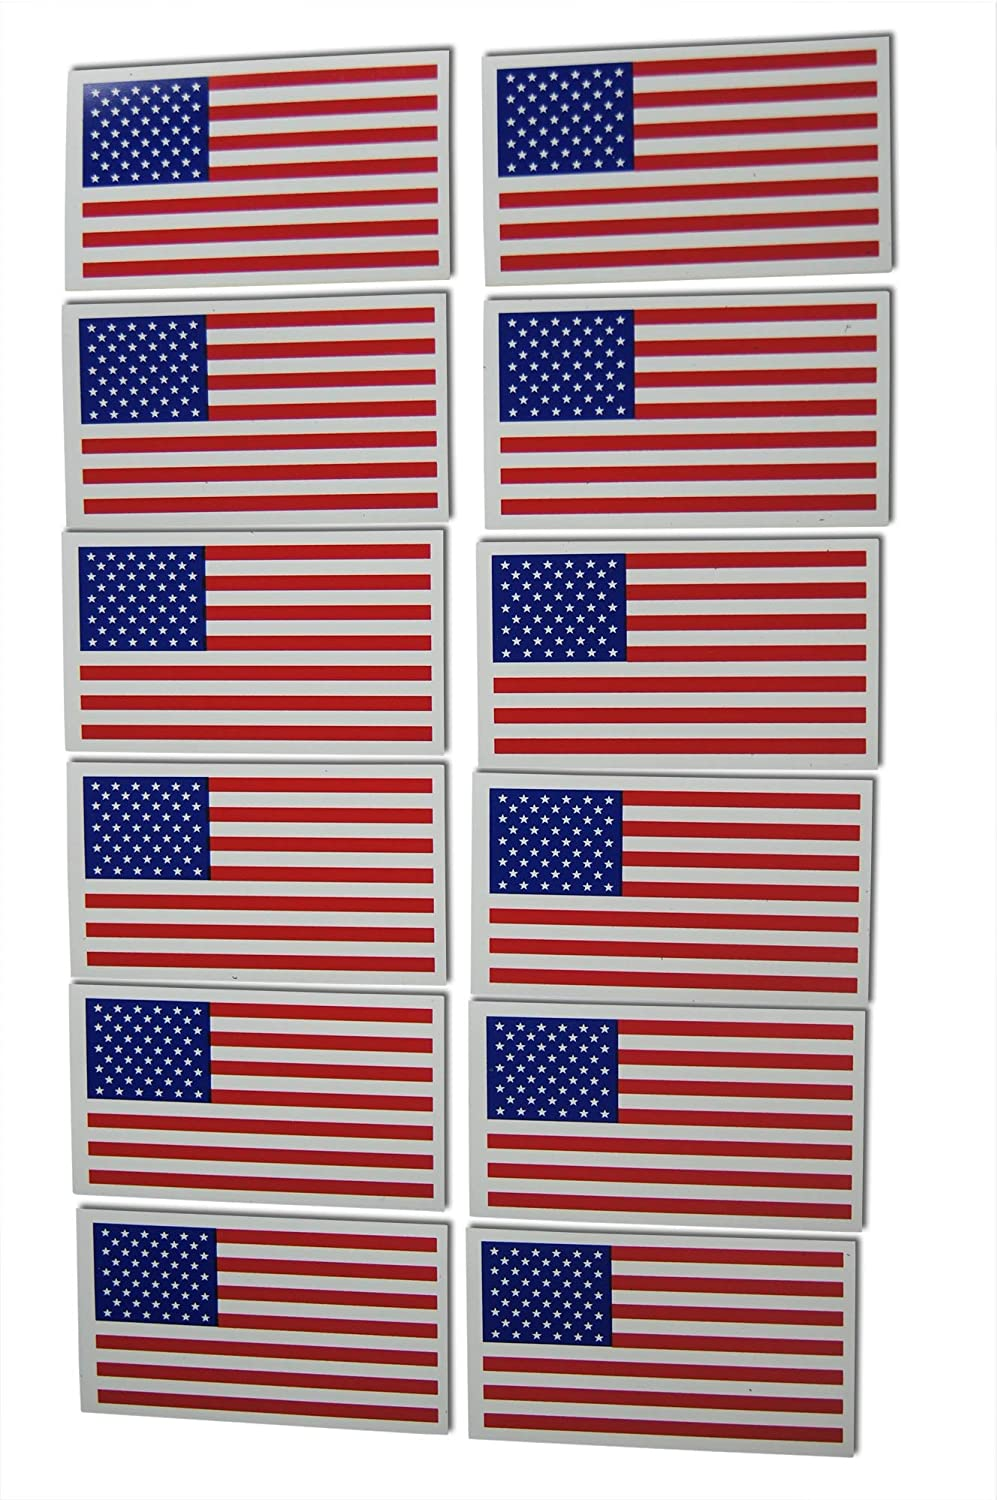 Small American Flag Patriotic Military Magnets Set includes Twelve Mini Rectangles in Classic Red, White, Blue US Design (12 Pieces)